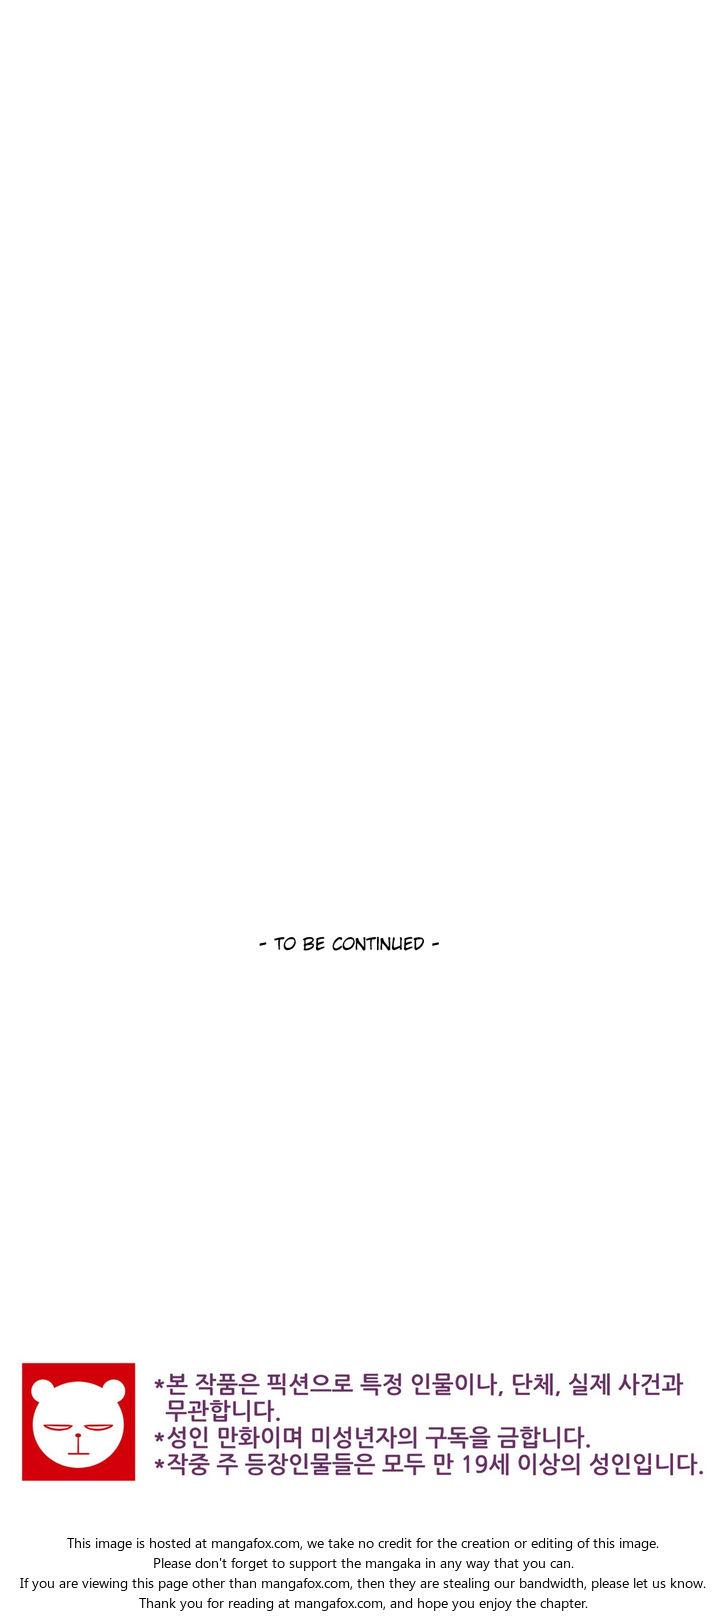 [Donggul Gom] She is Young (English) Part 1/2 1594